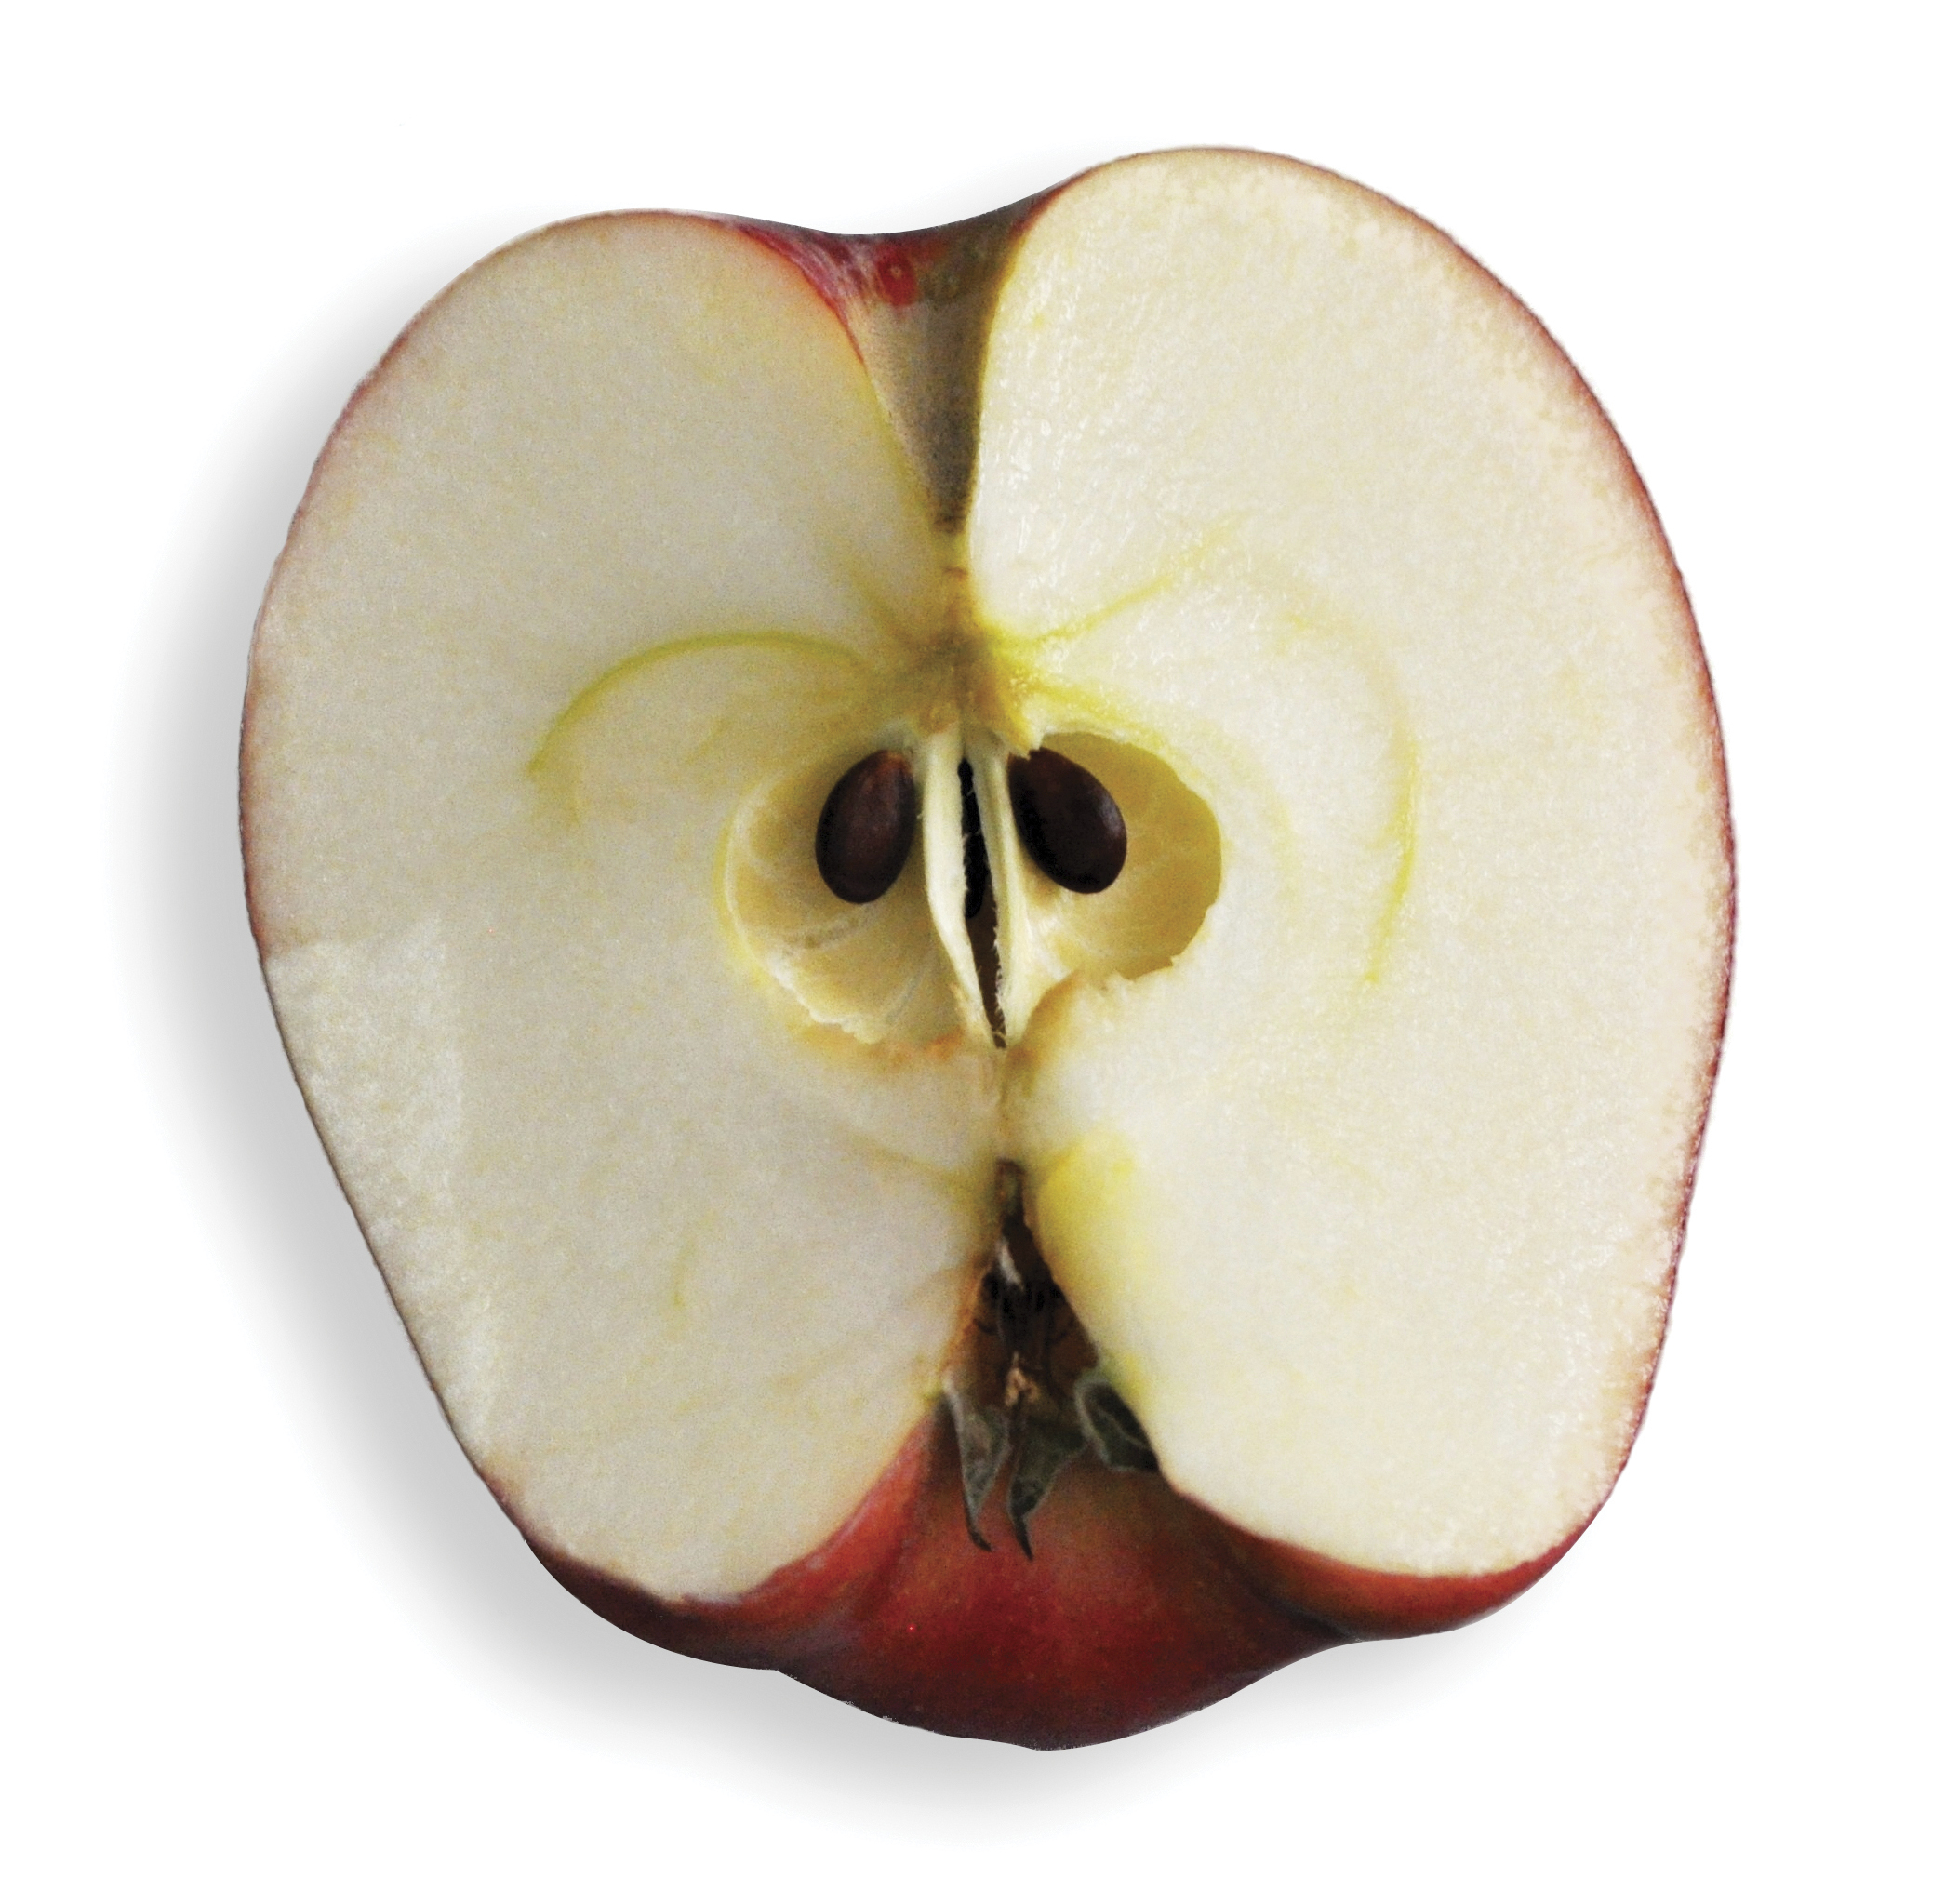 A portion of a sliced apple with two seeds showing.